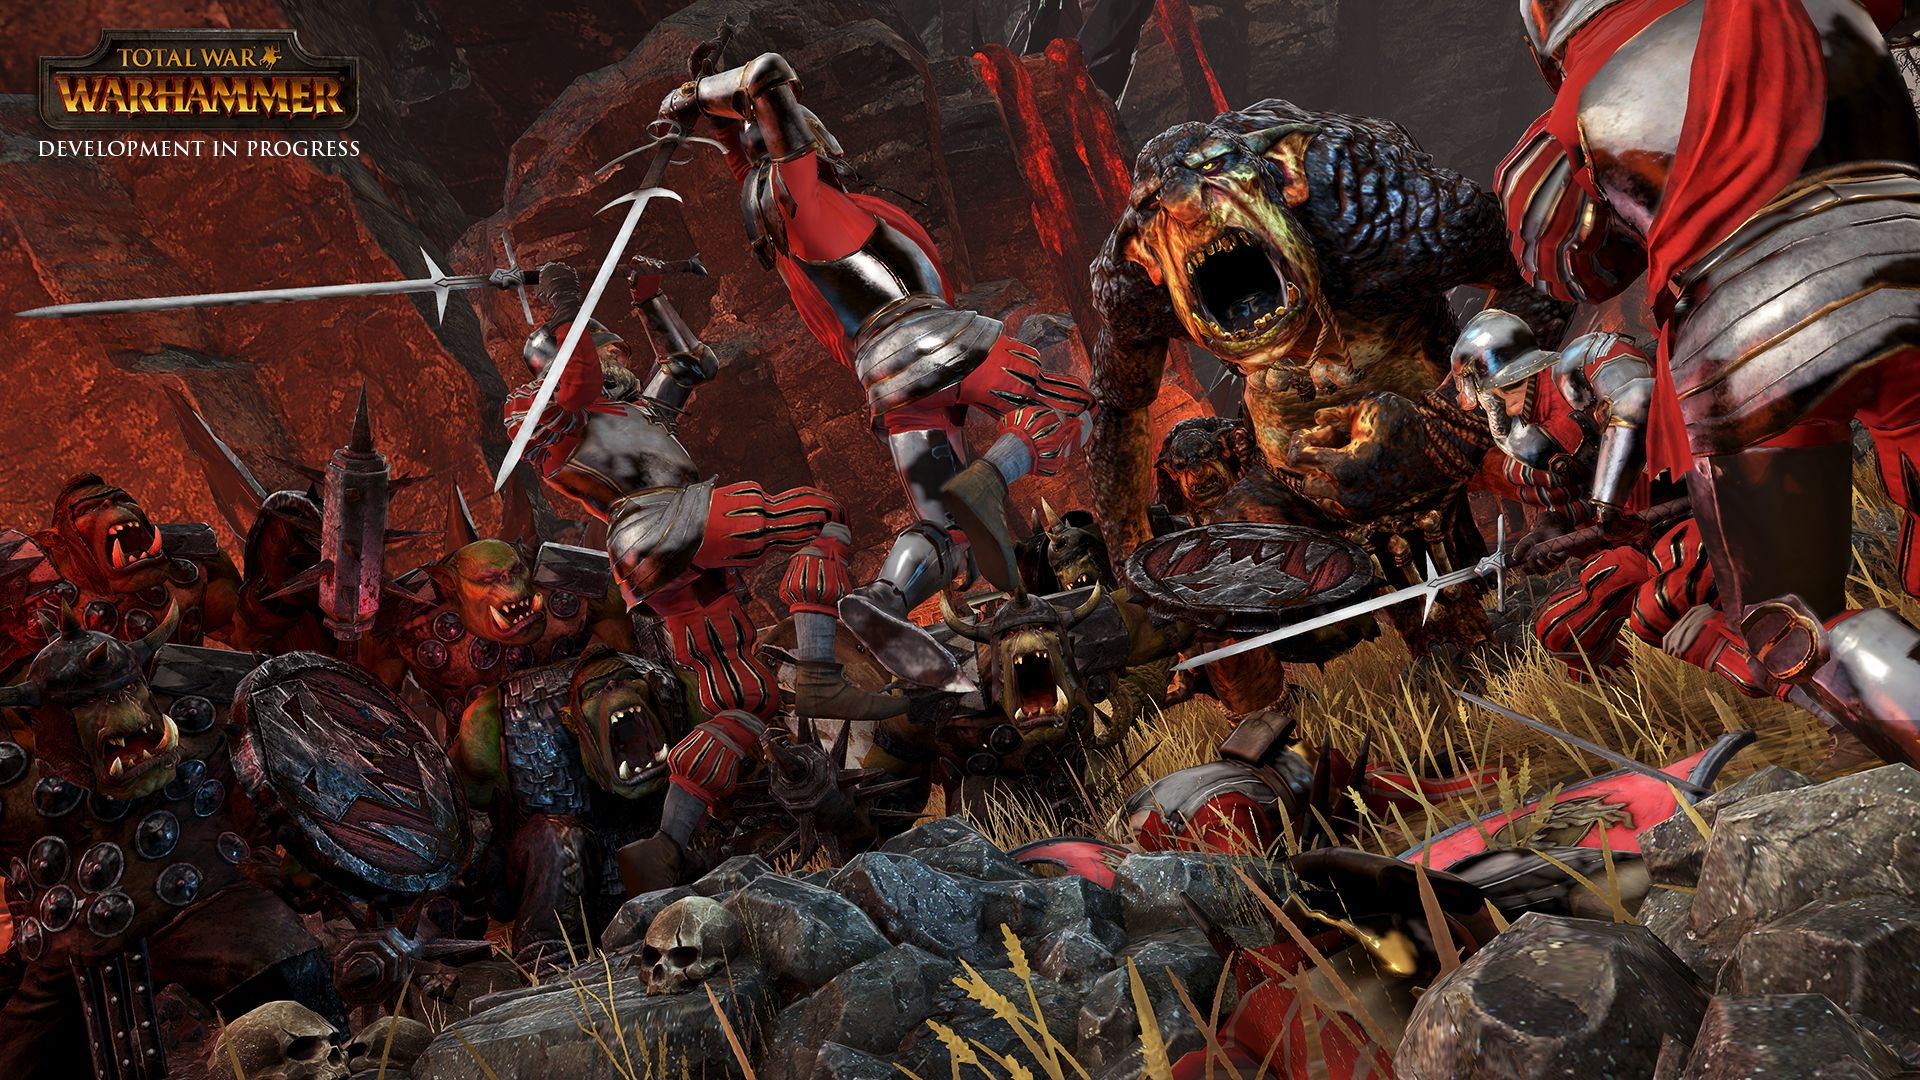 Total War: Warhammer Screenshots Released